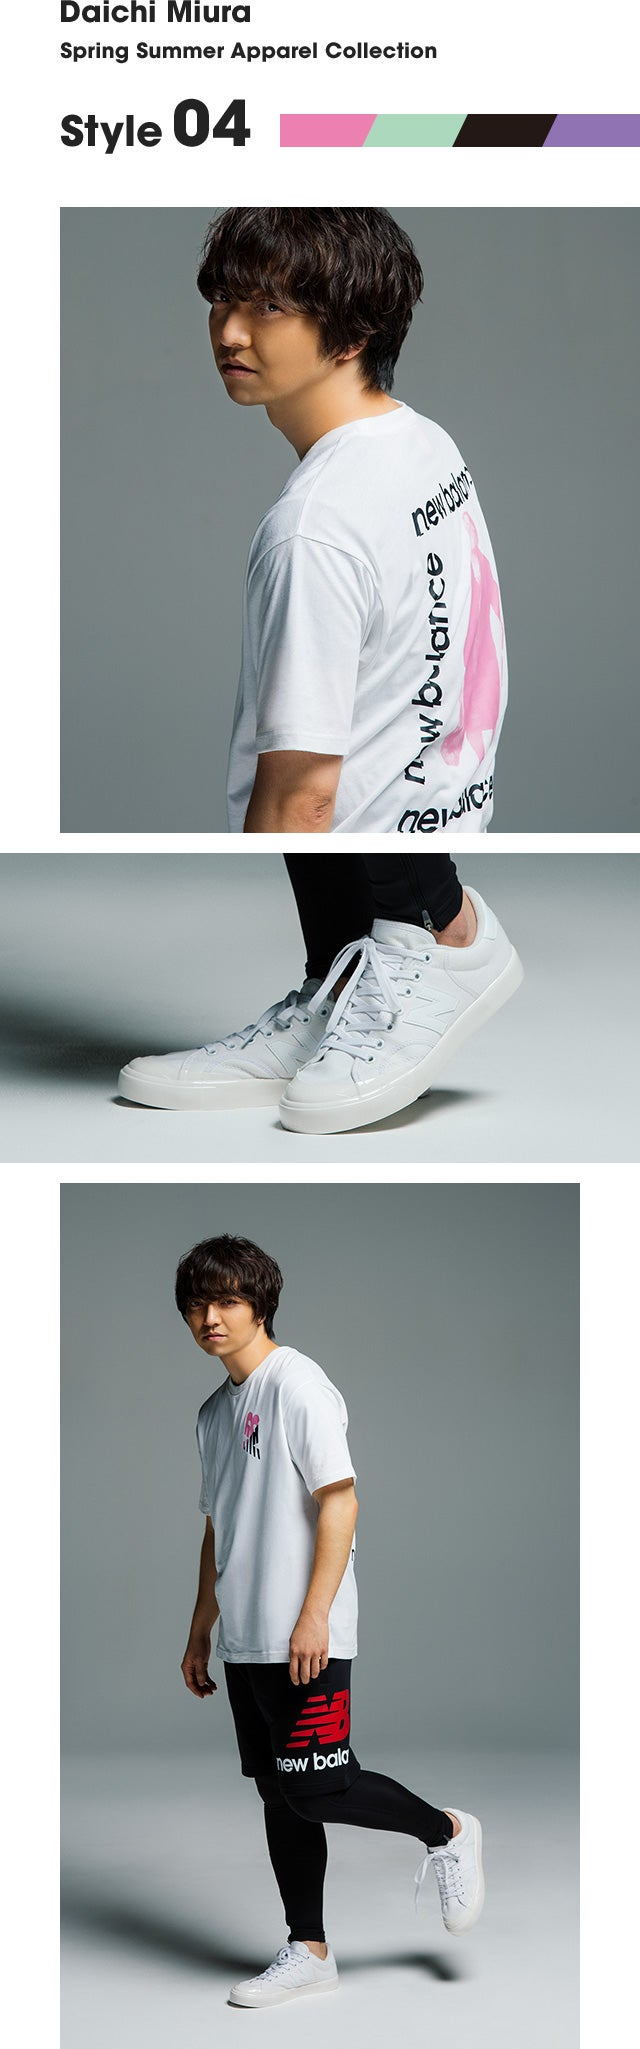 Daichi Miura. Spring Summer Apparel Collection Style04